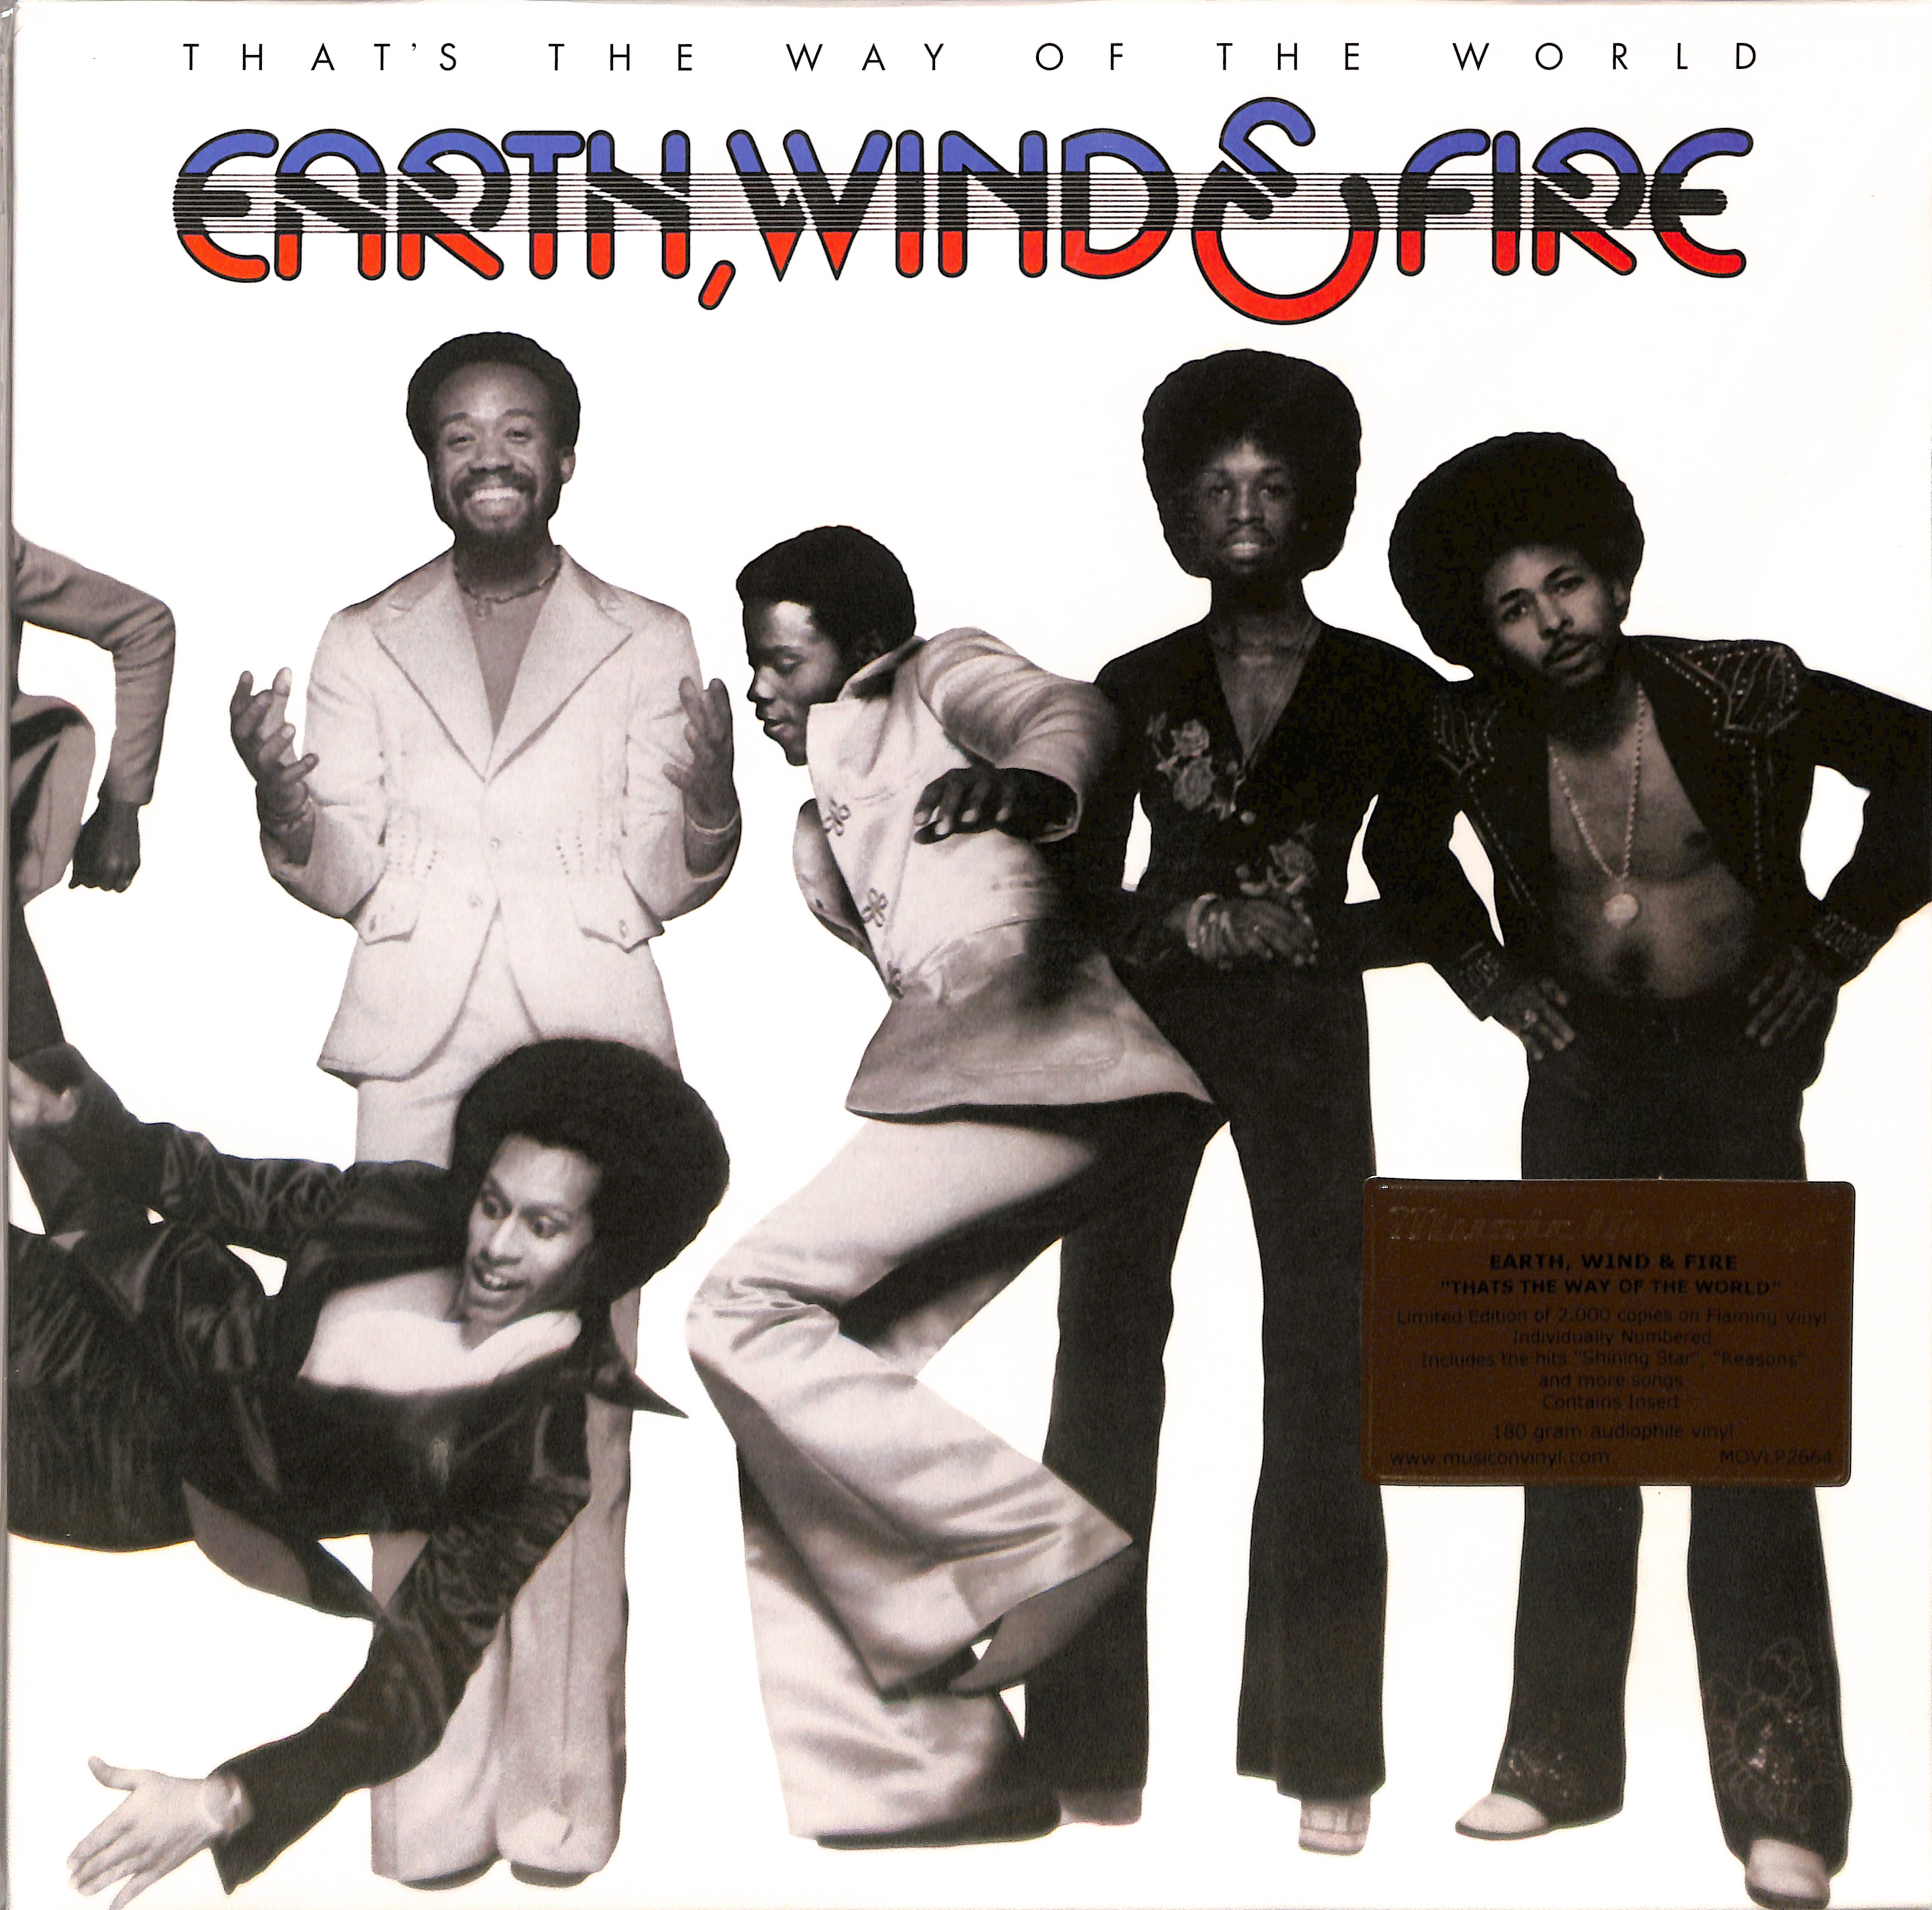 Earth, Wind & Fire - THATS THE WAY OF THE WORLD